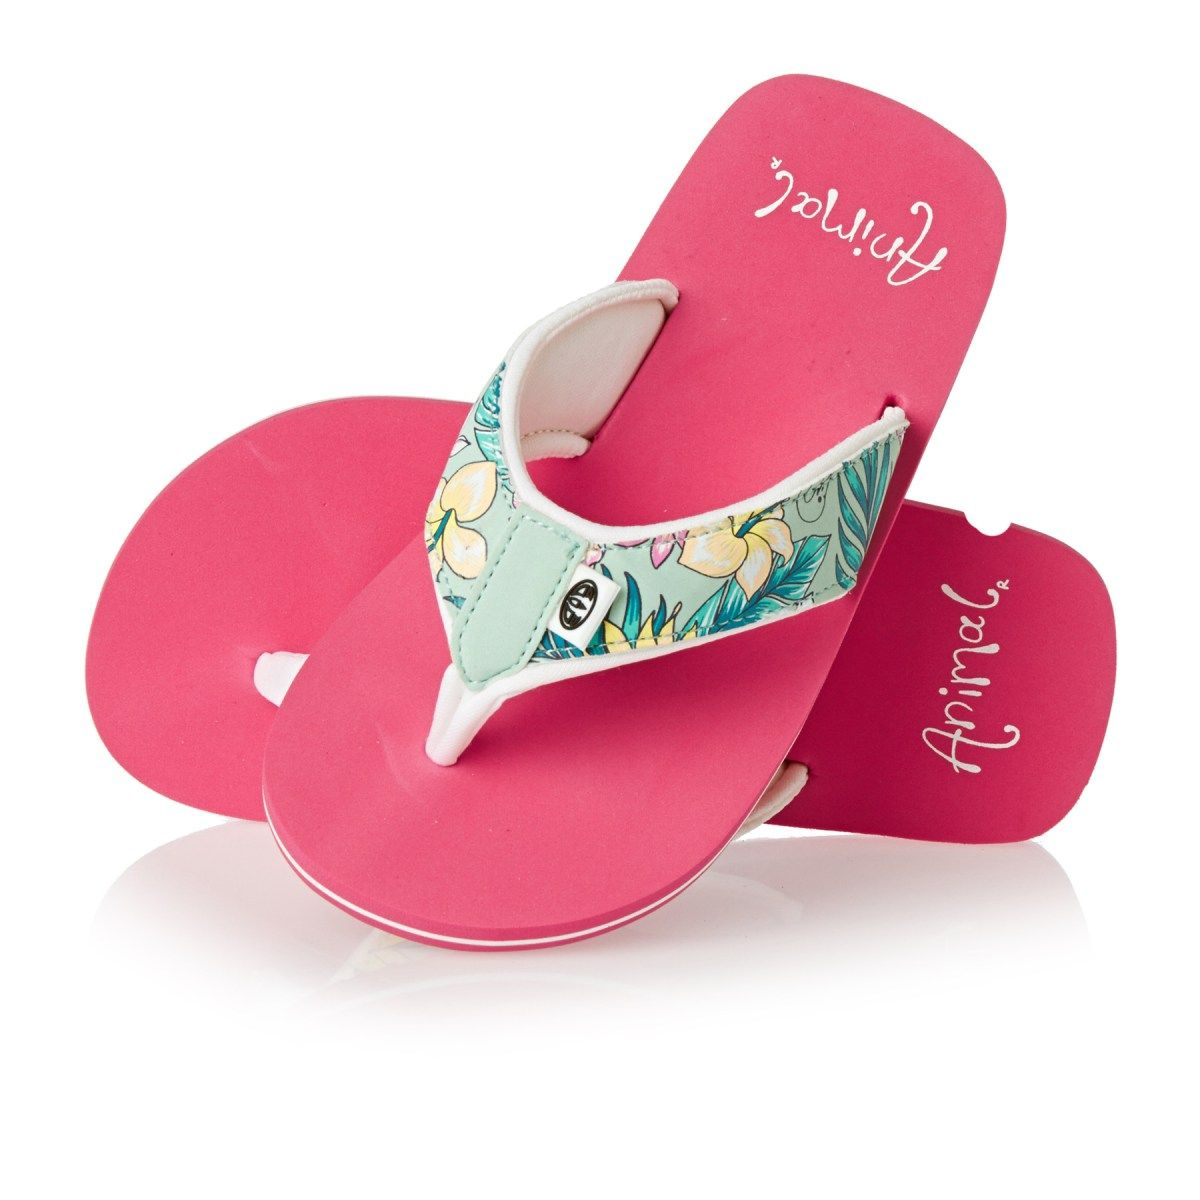 c66f60e709bf Animal Flip Flops - Animal Swish Upper Print Girls Flip Flops - Peppermint  Green